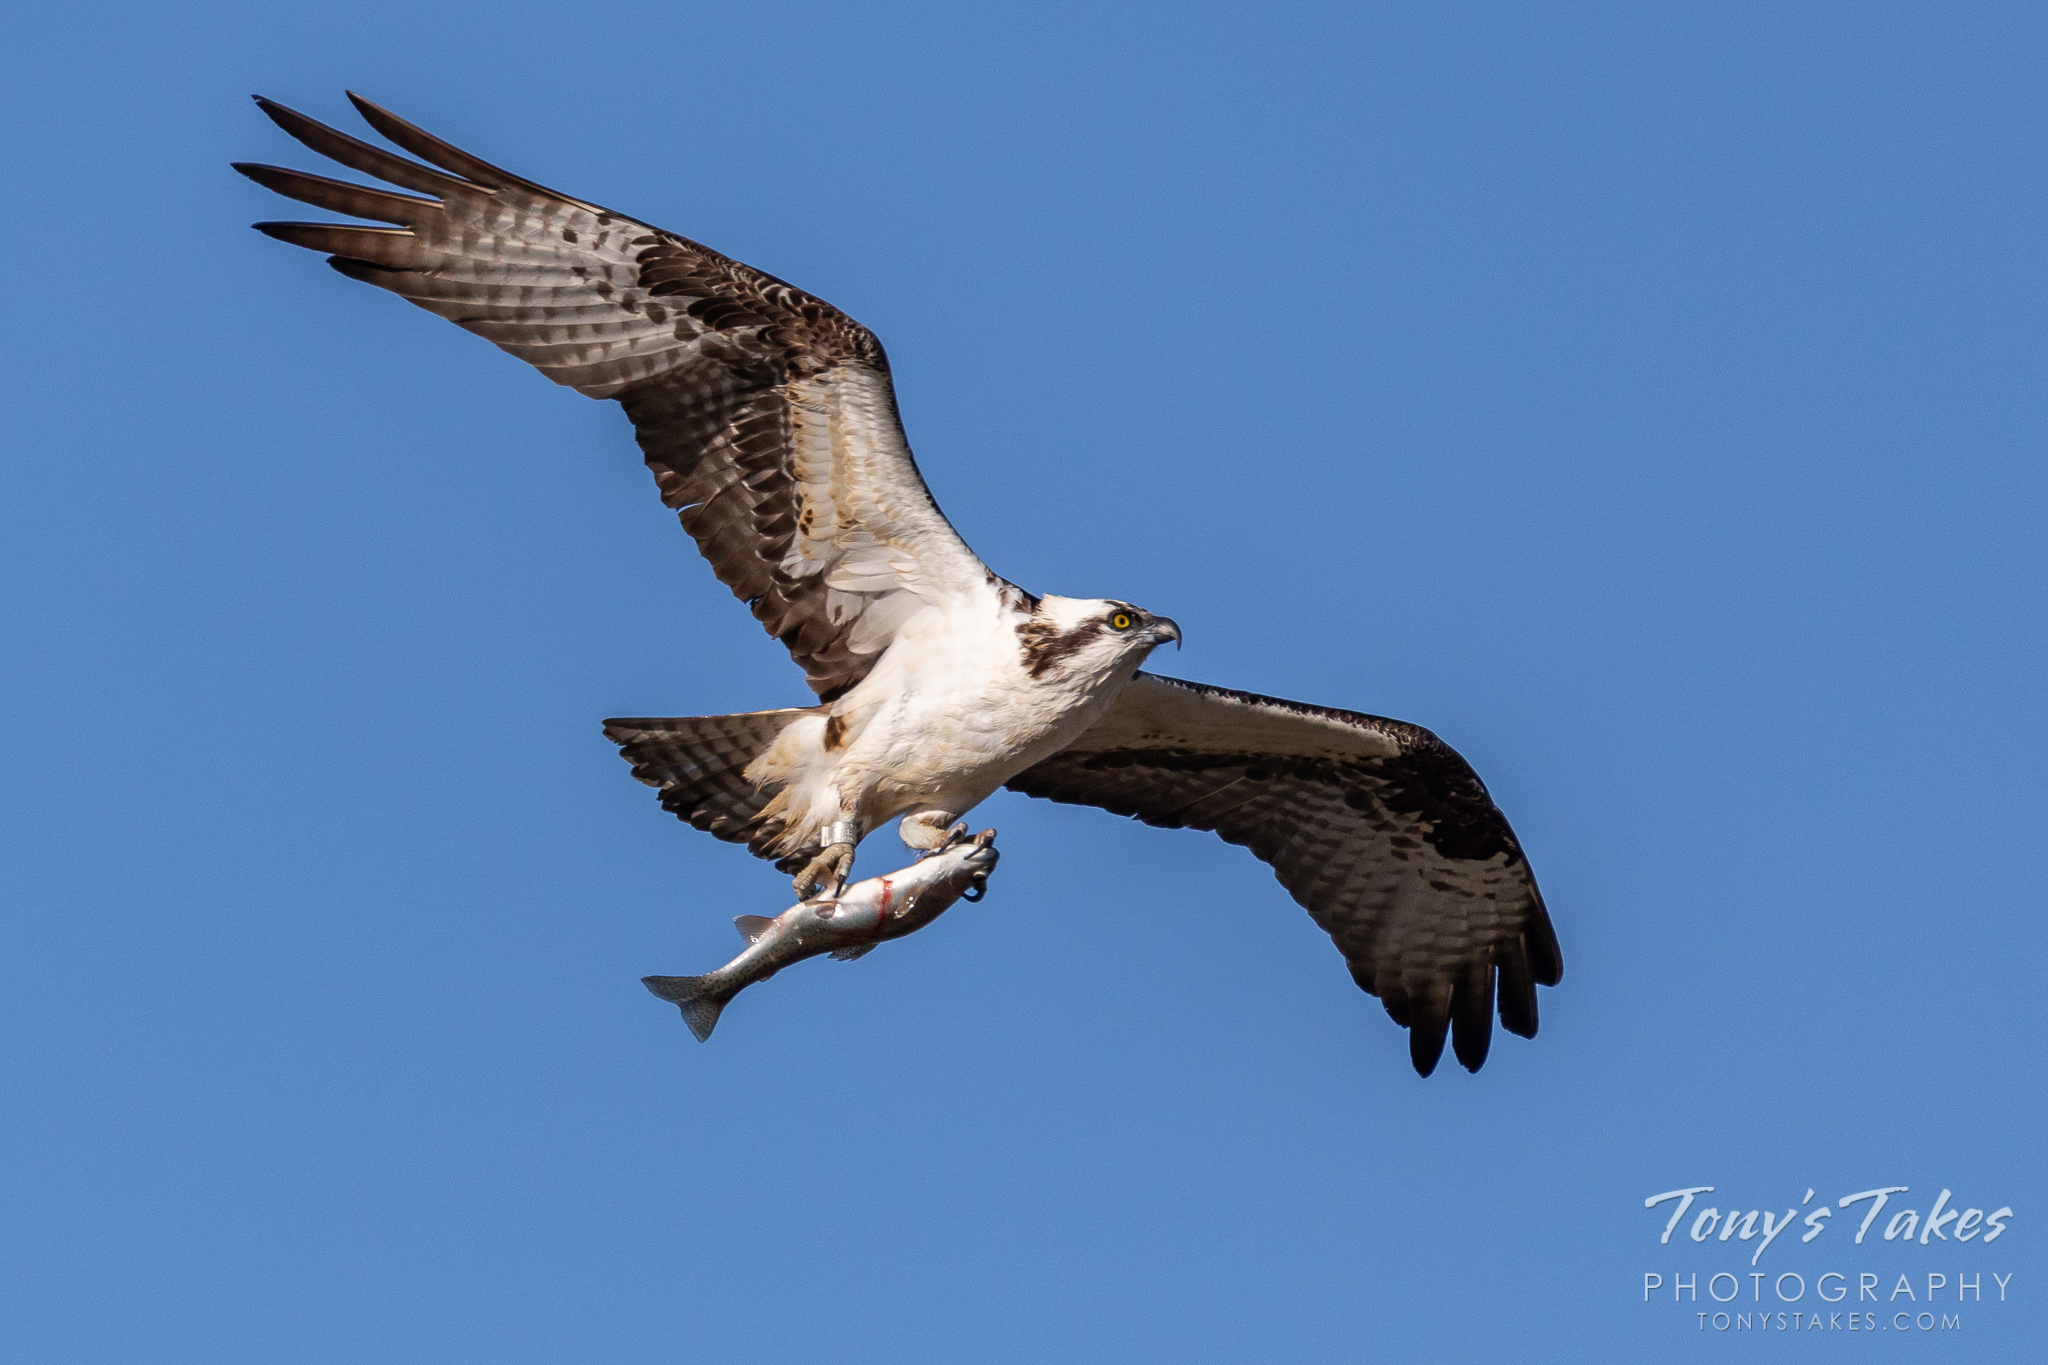 A male osprey returns to its nest with a nice fish. (© Tony's Takes)